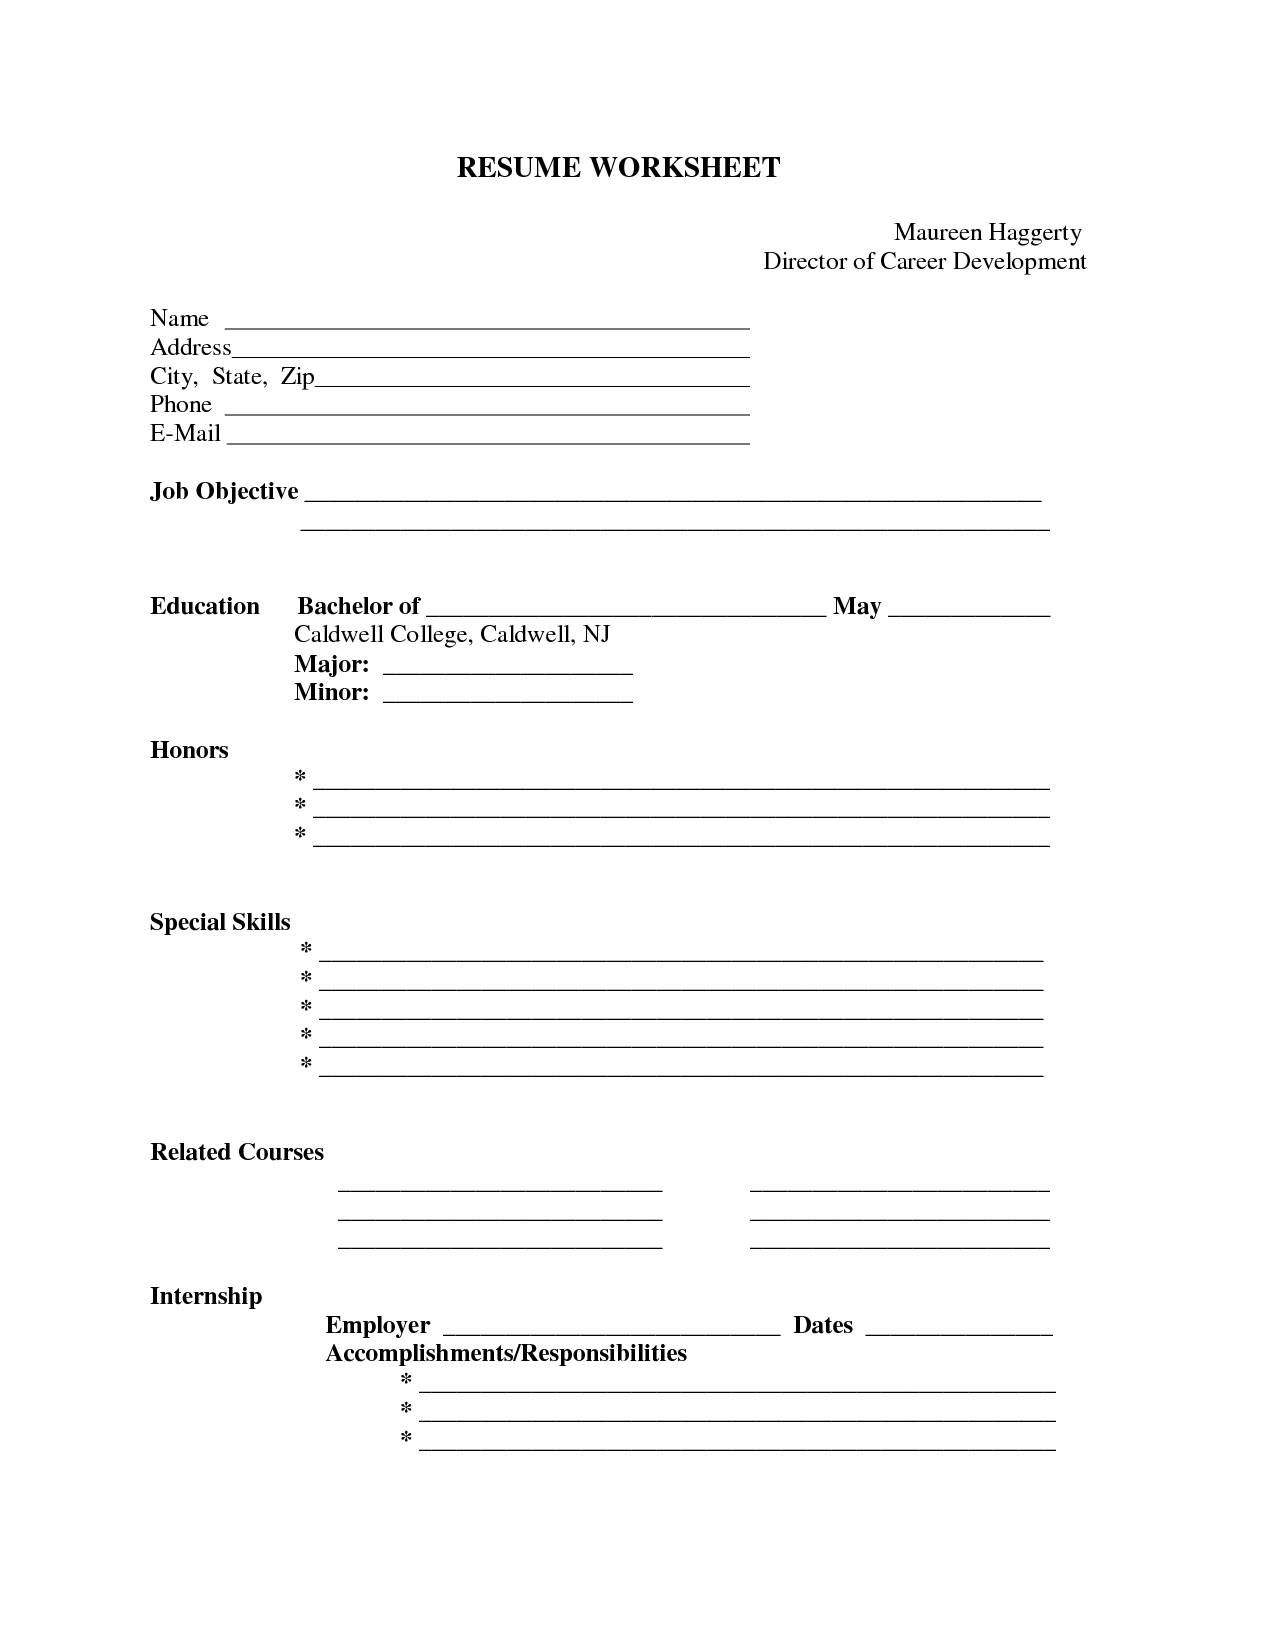 printable resume maker - Tire.driveeasy.co